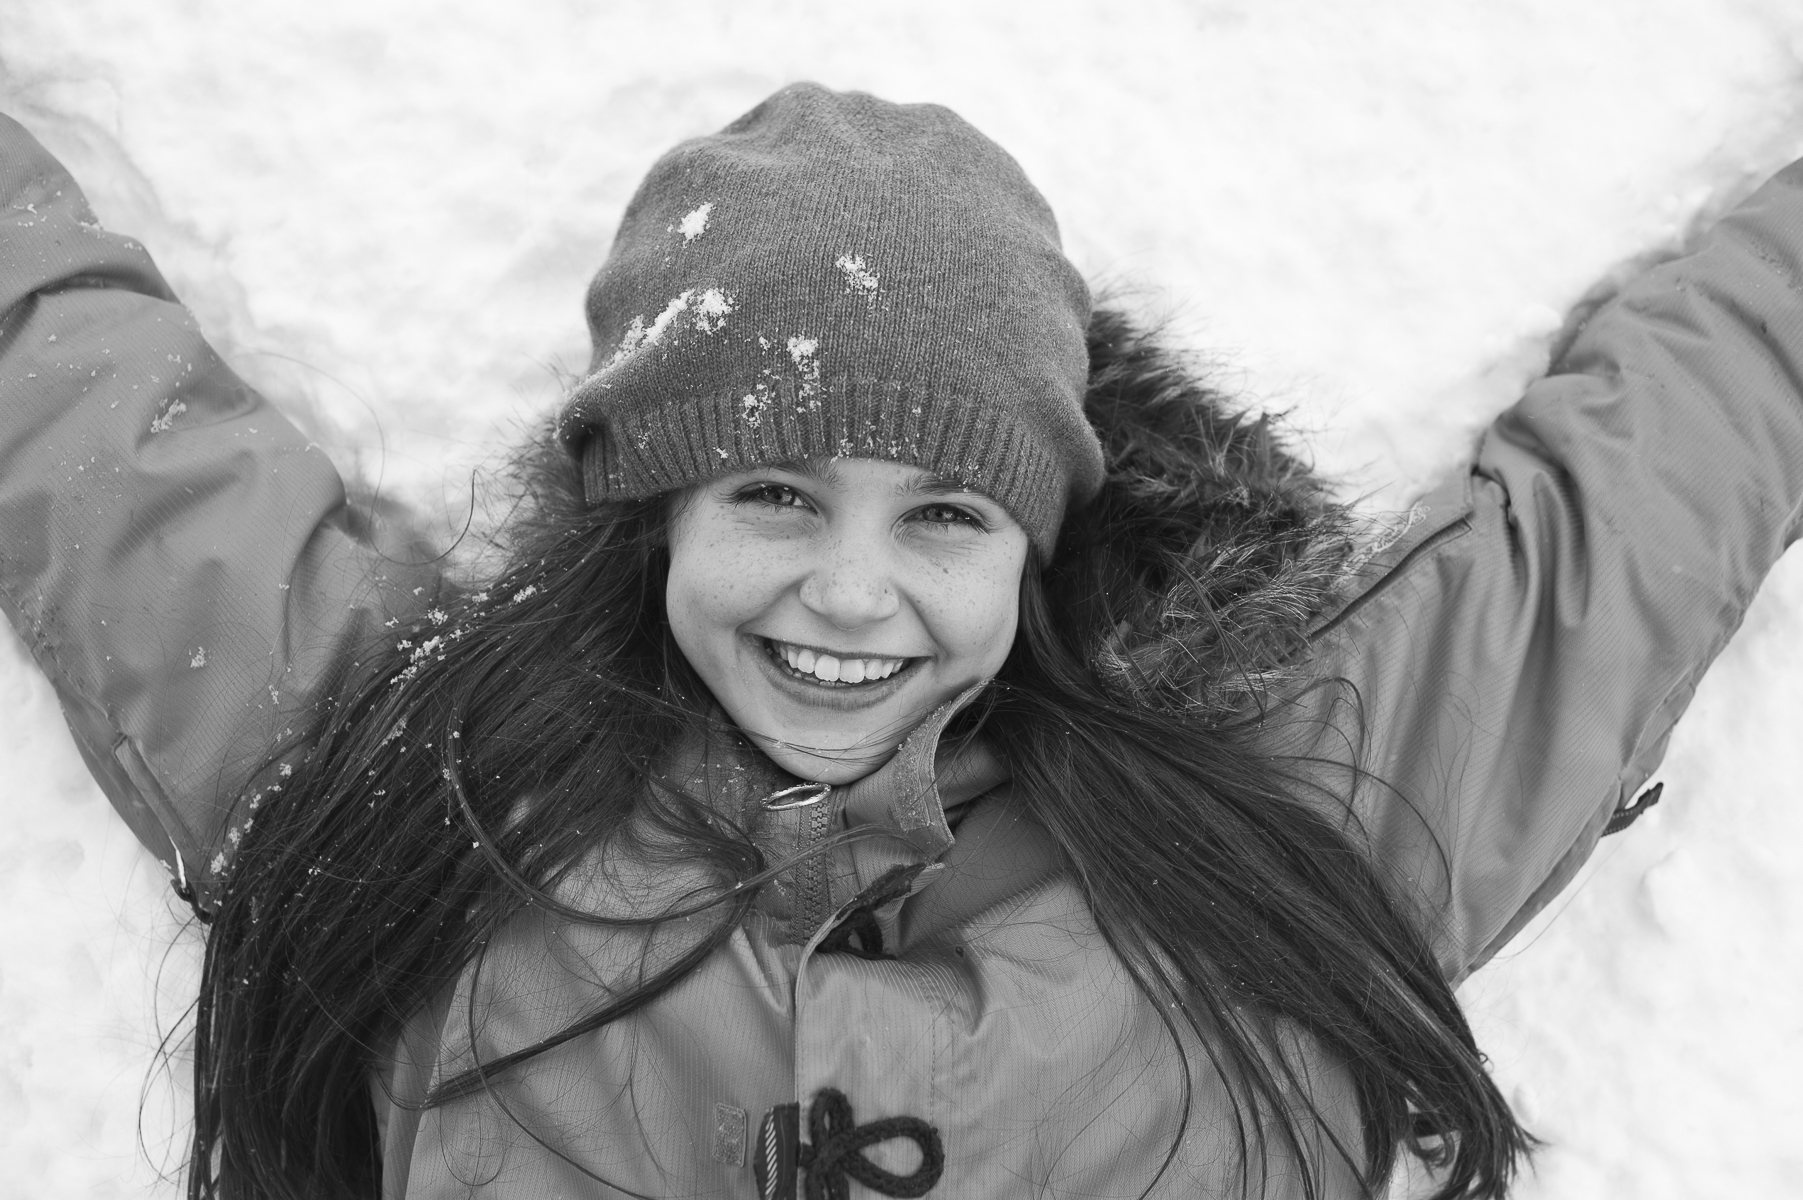 young girl making snow angel